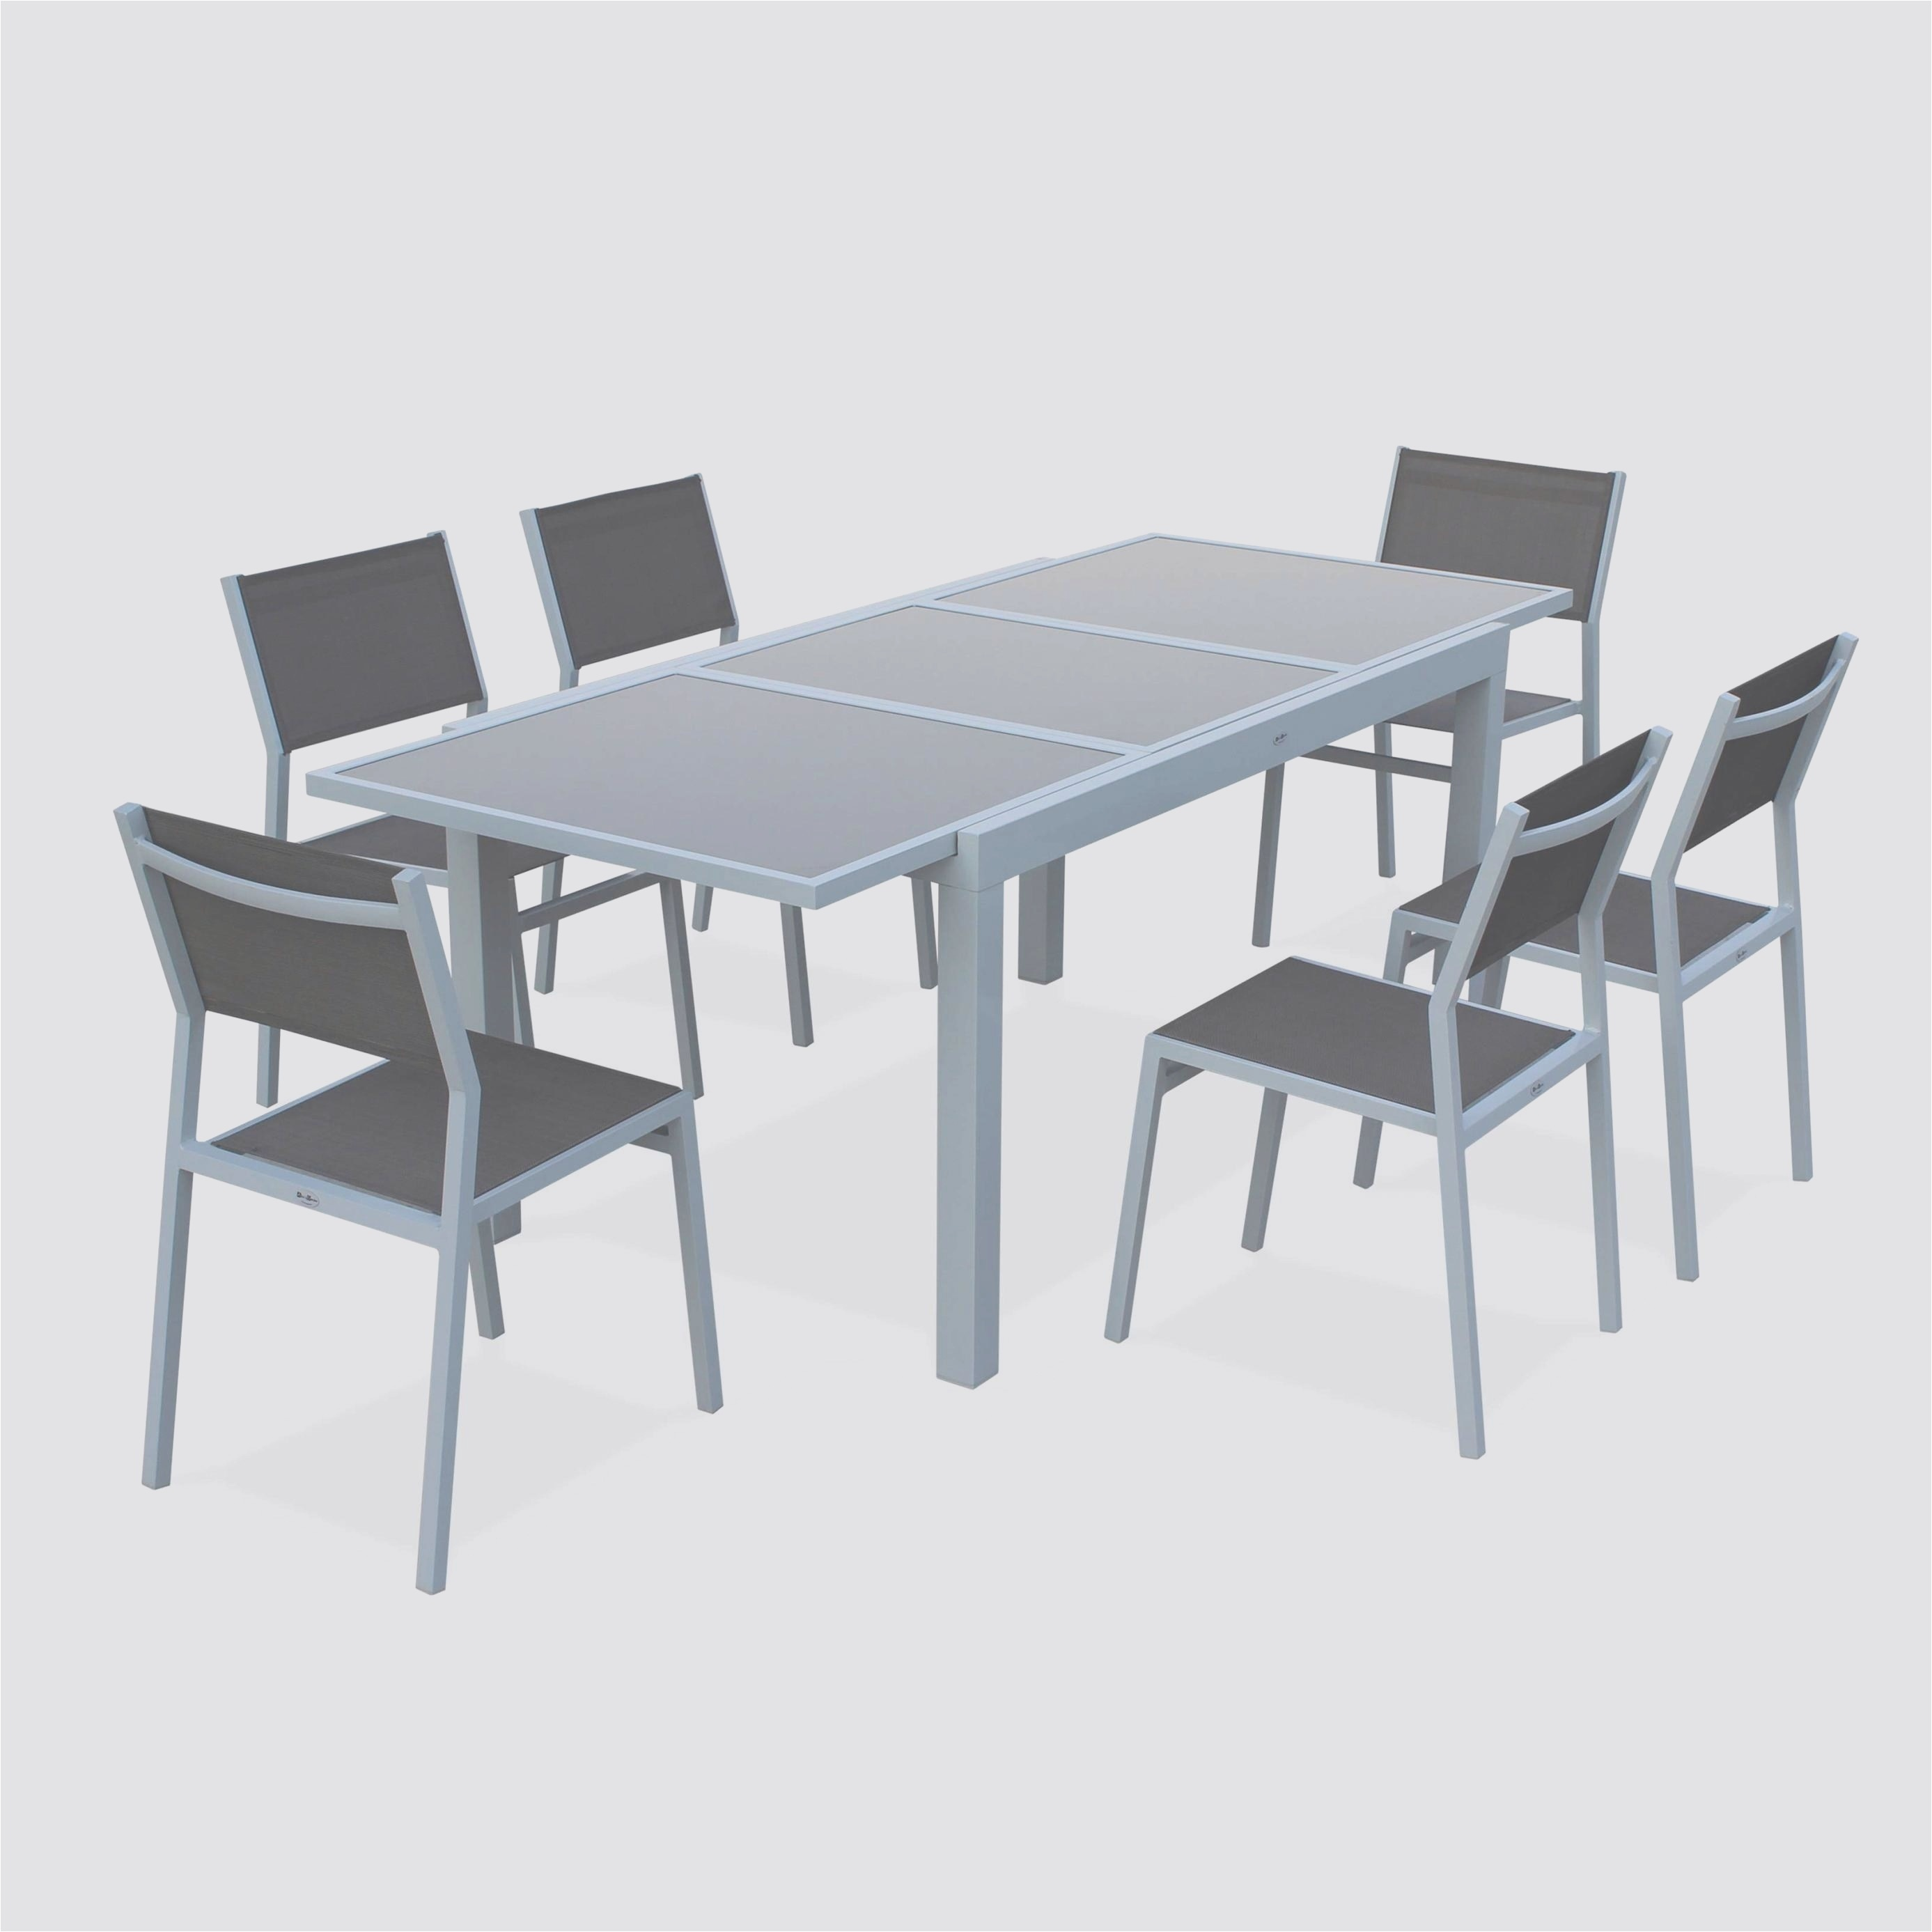 Magasin Tati Chaises Best Table Salon De Jardin Tati Pictures House Design